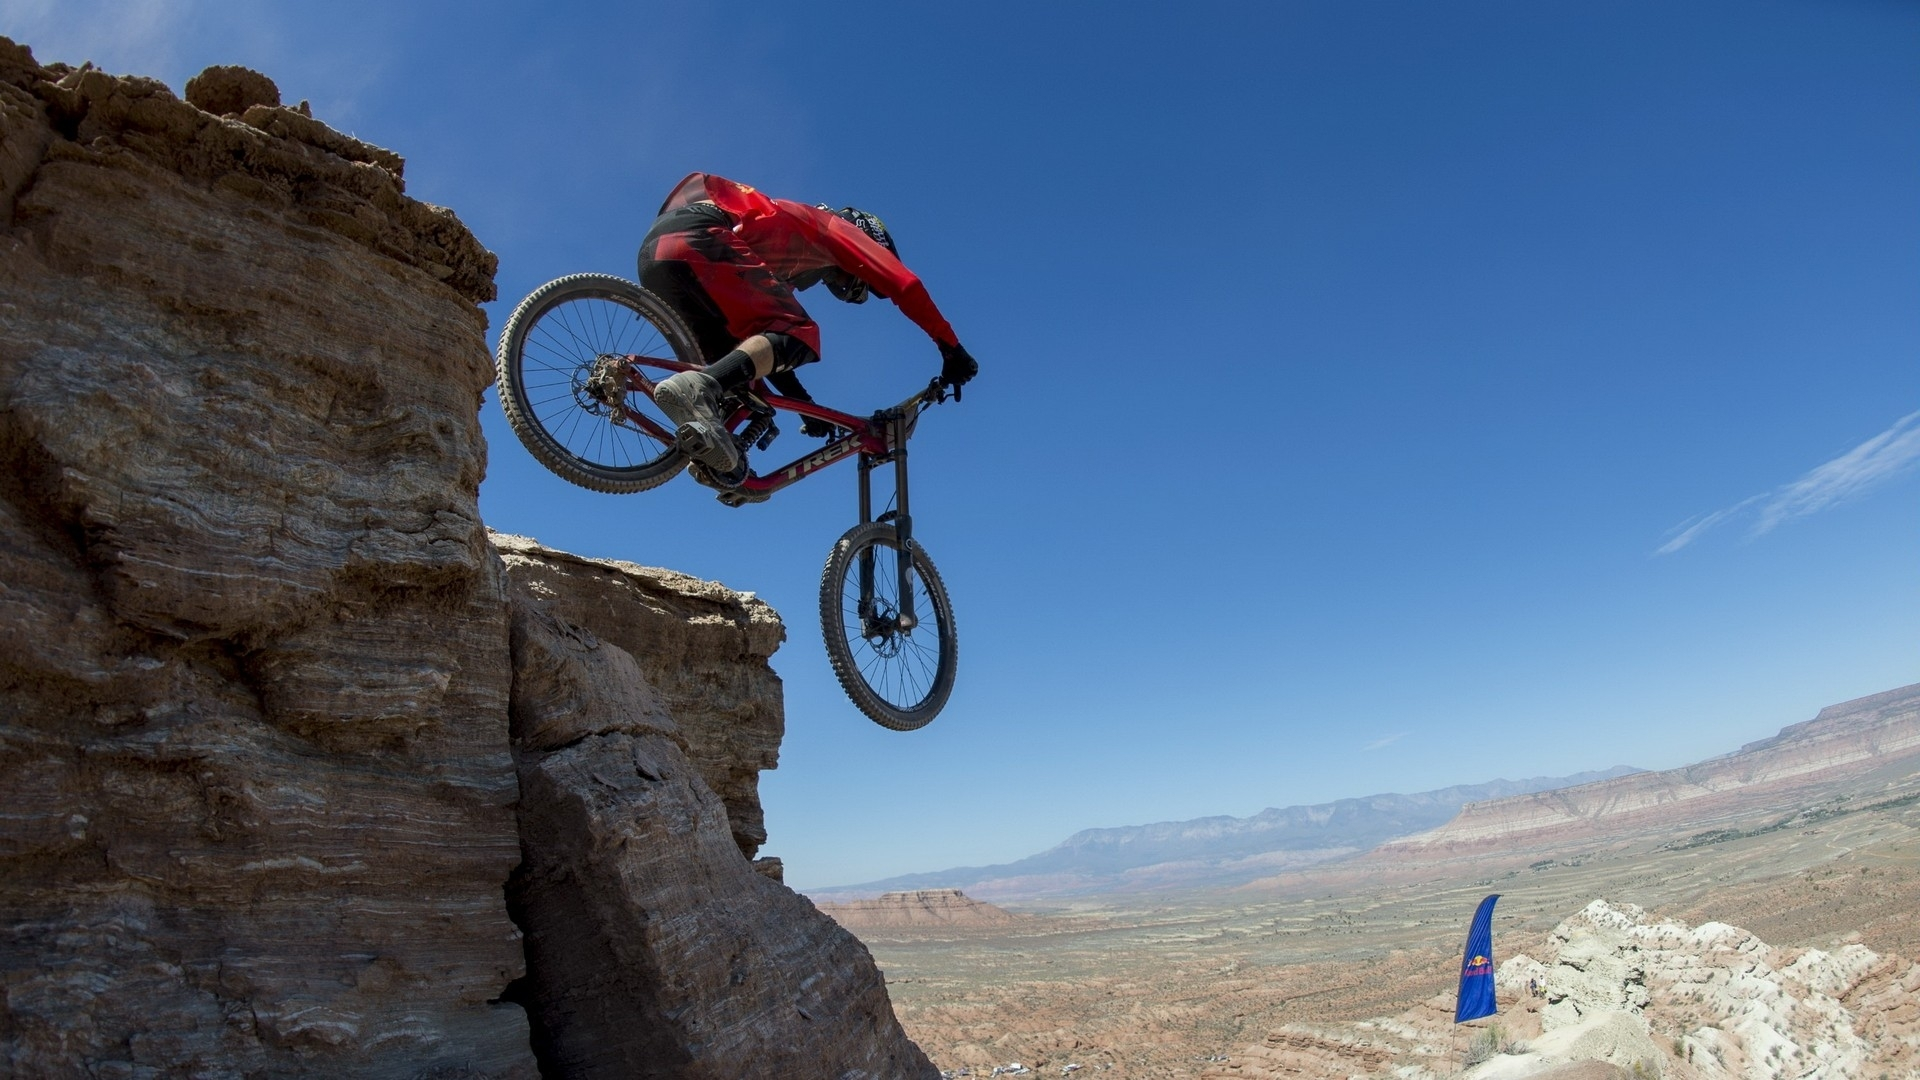 bicycles sports extreme red bull rampage mountain cliff landscapes 1920x1080